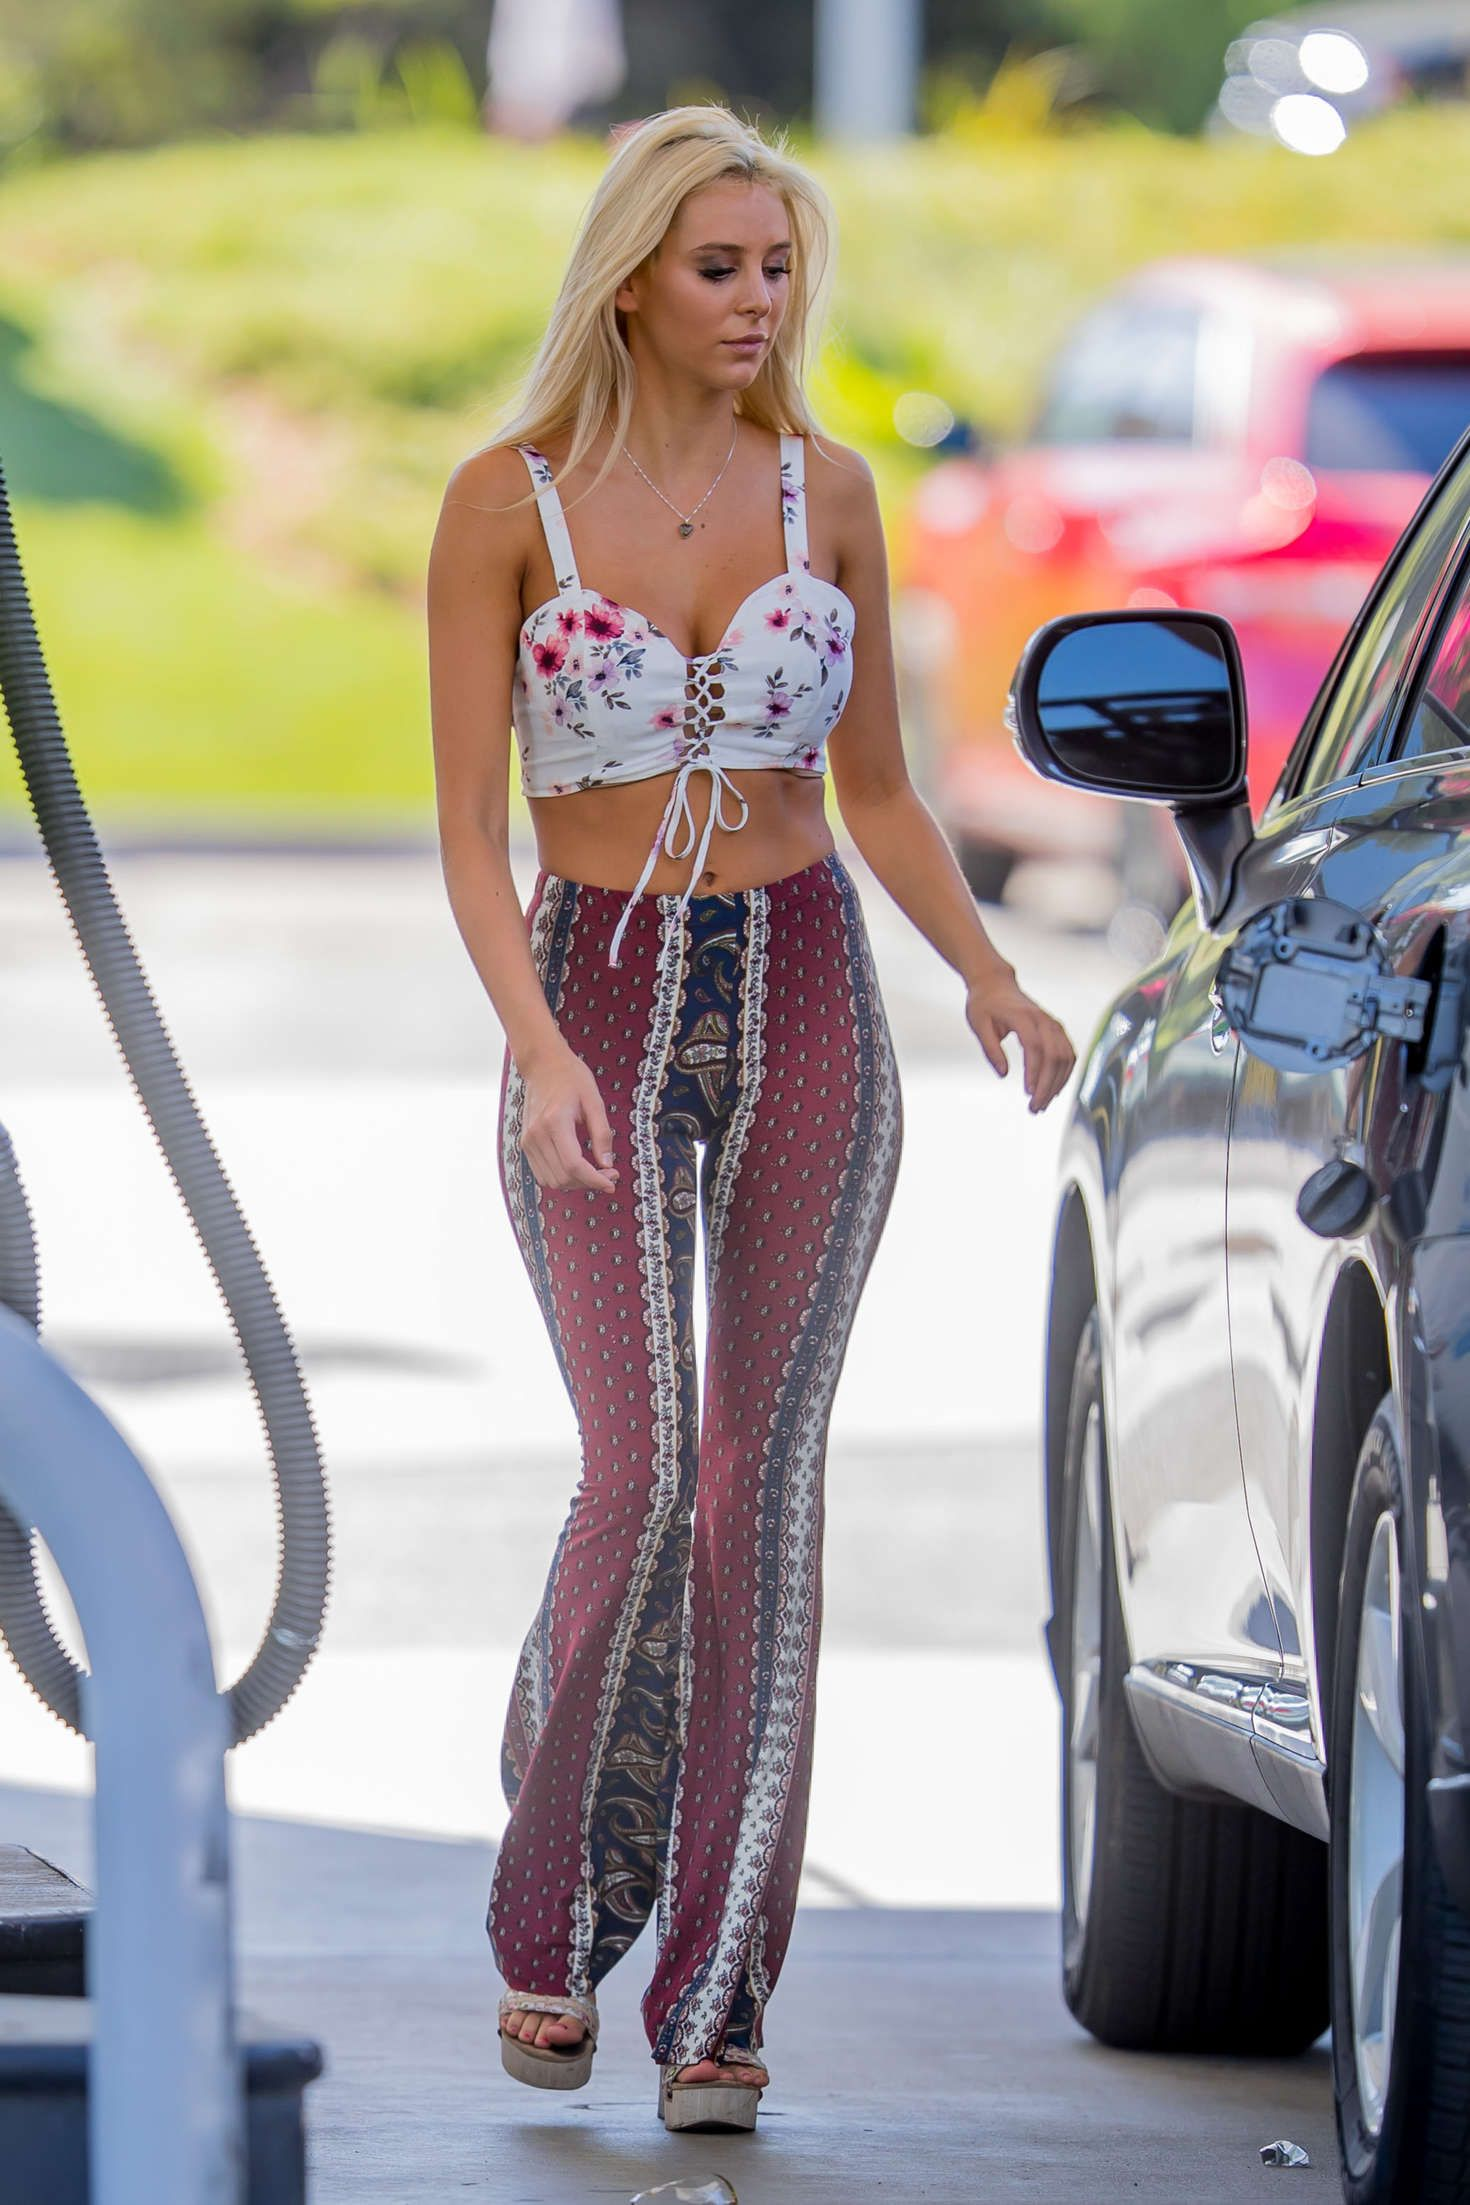 Find A Gas Station >> http://www.gotceleb.com/wp-content/uploads/photos/bri-teresi/at-a-gas-station-in-la/Bri-Teresi ...